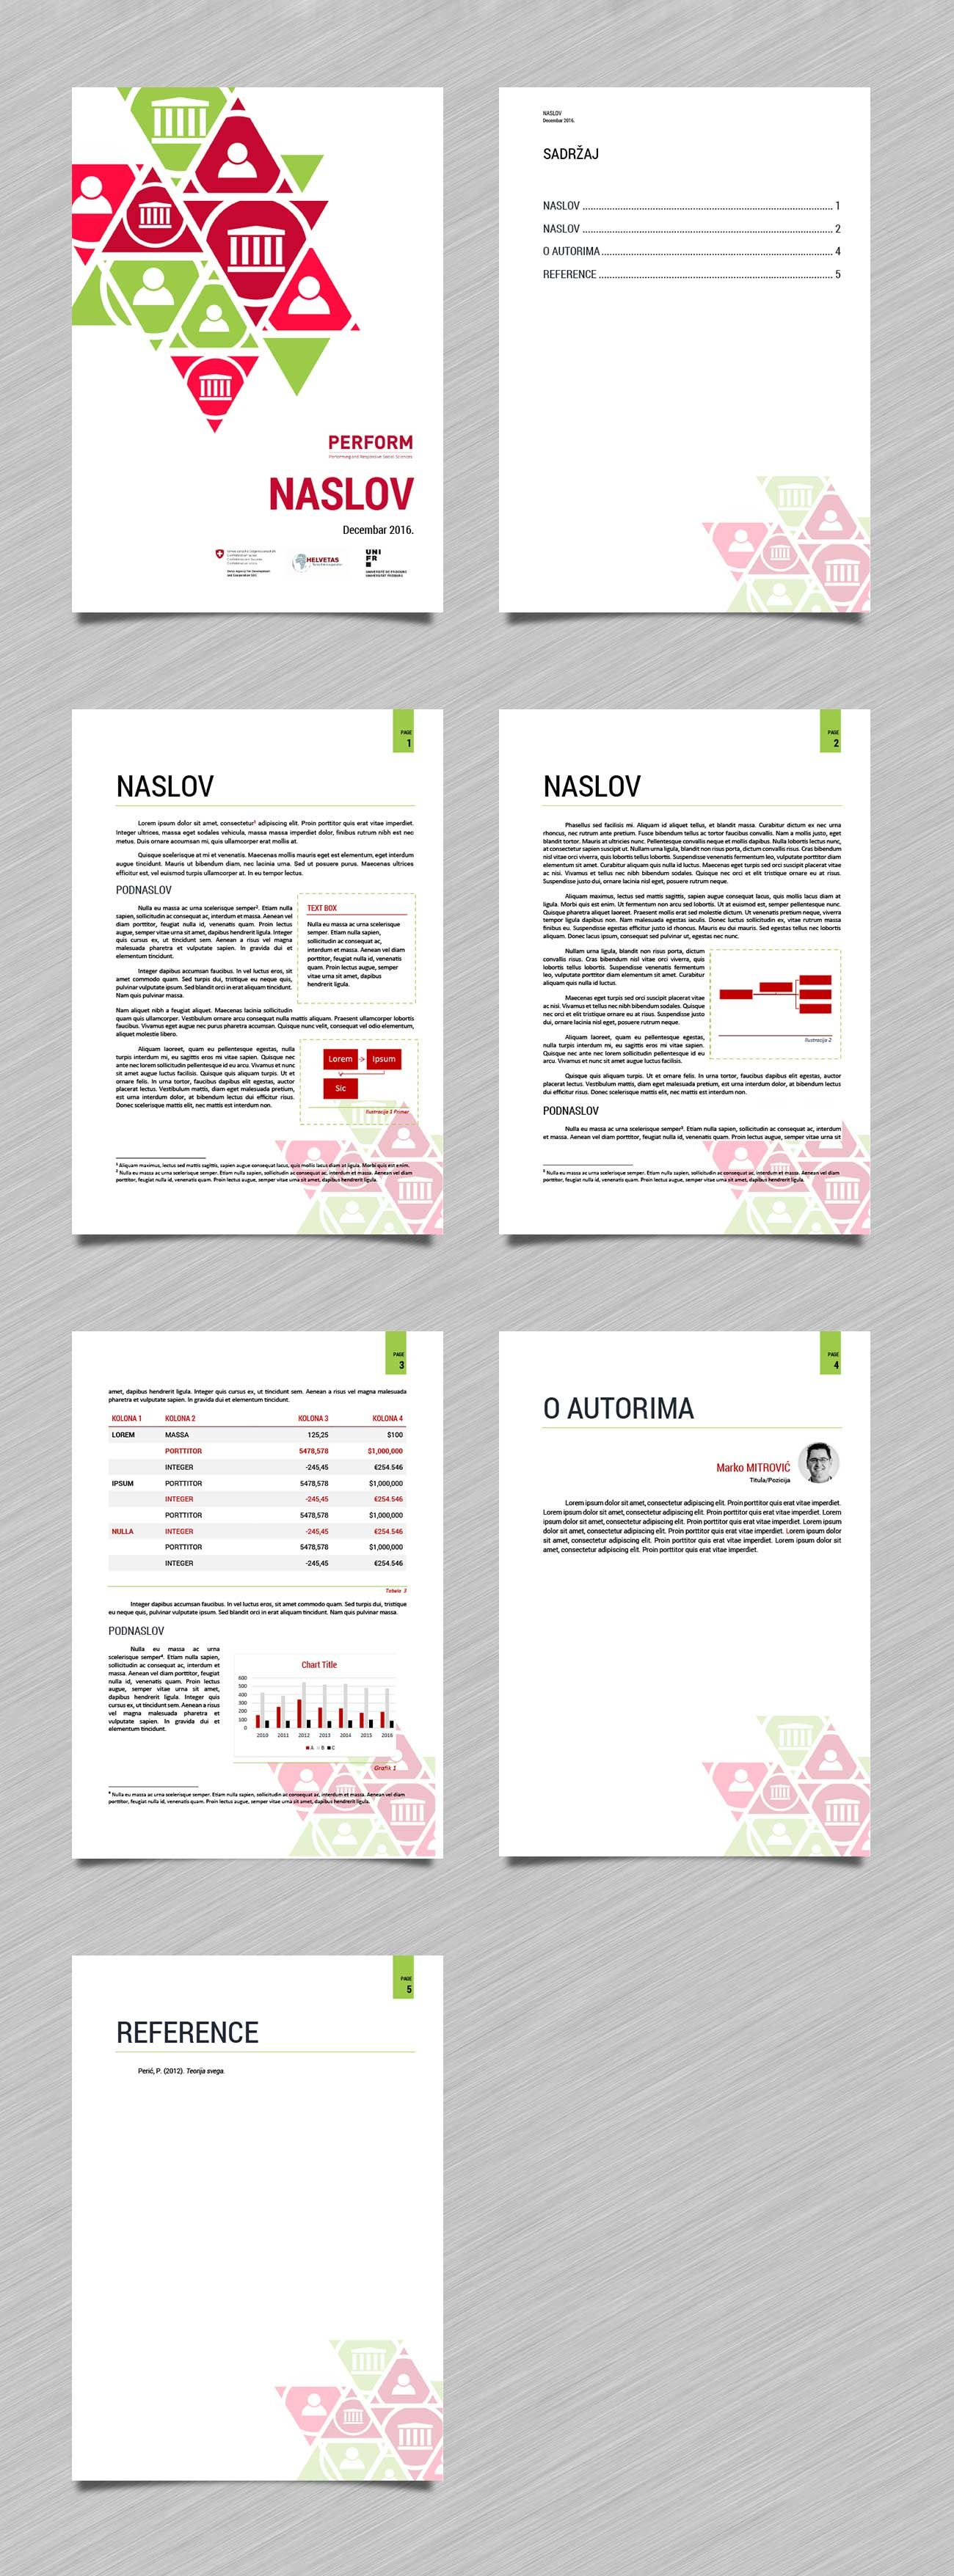 Word design templates doc invoice template word invoice template for science brochure design microsoft word template packaging science brochure design microsoft word template maxwellsz